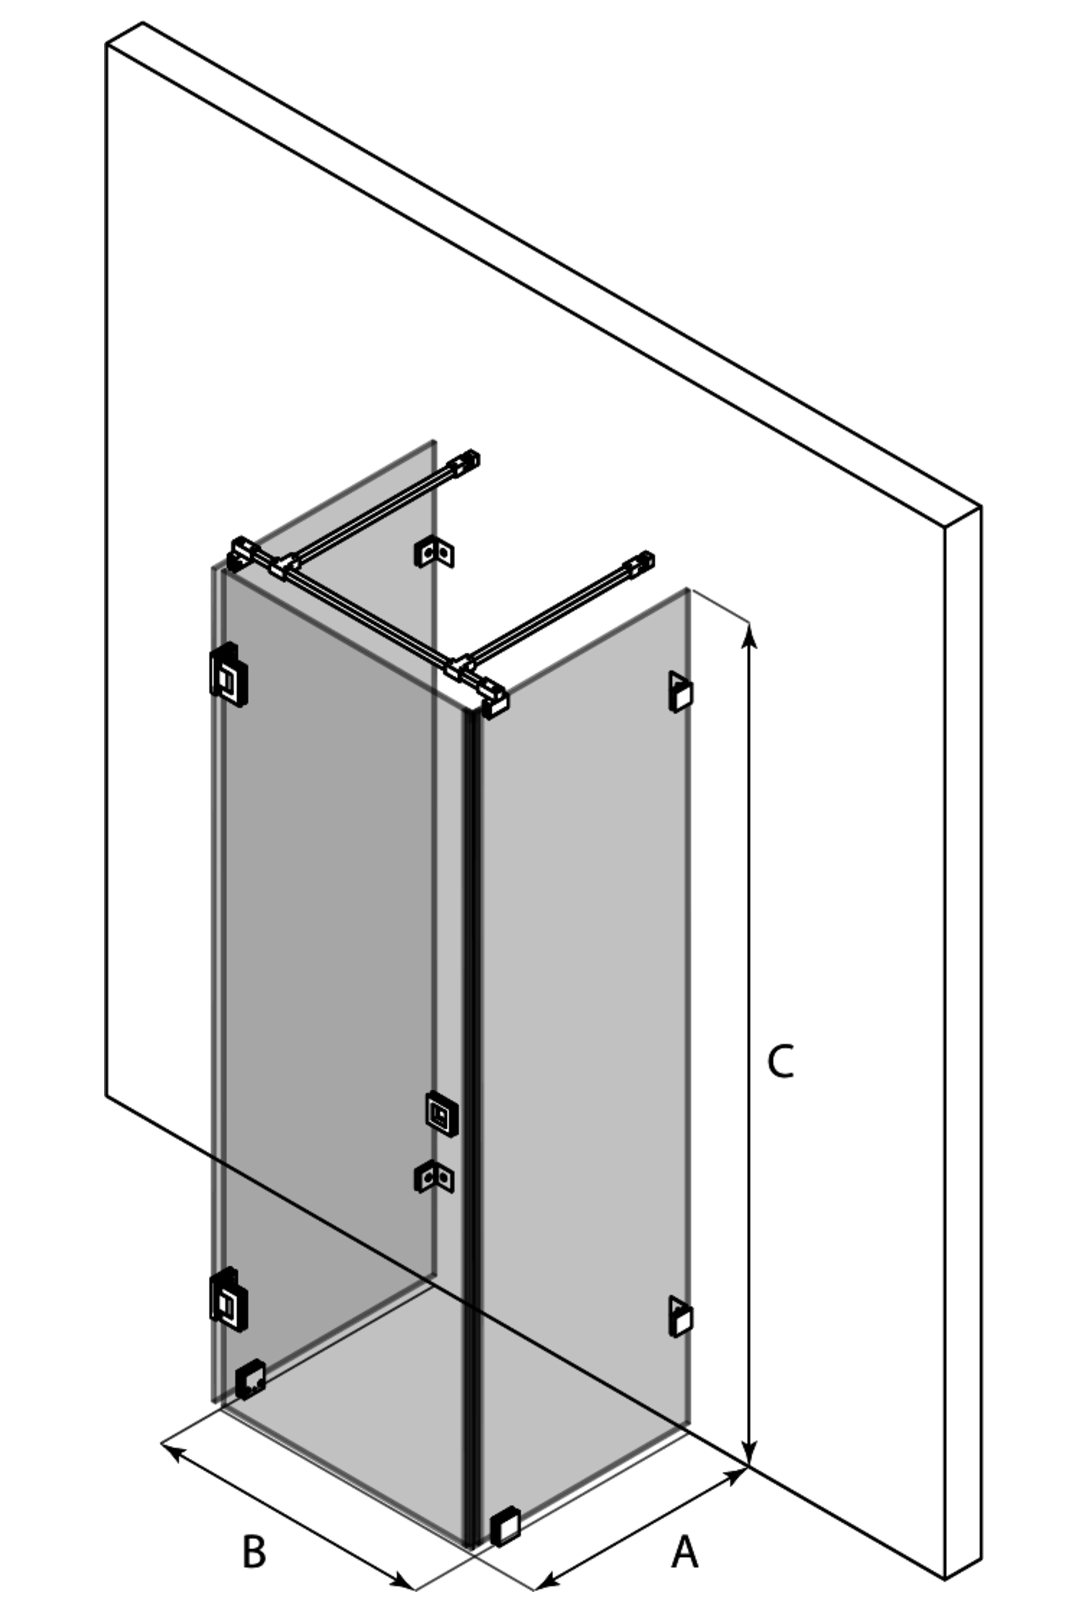 3d U-shaped enclosure with two fixed walls and a hinged door Vetro 560